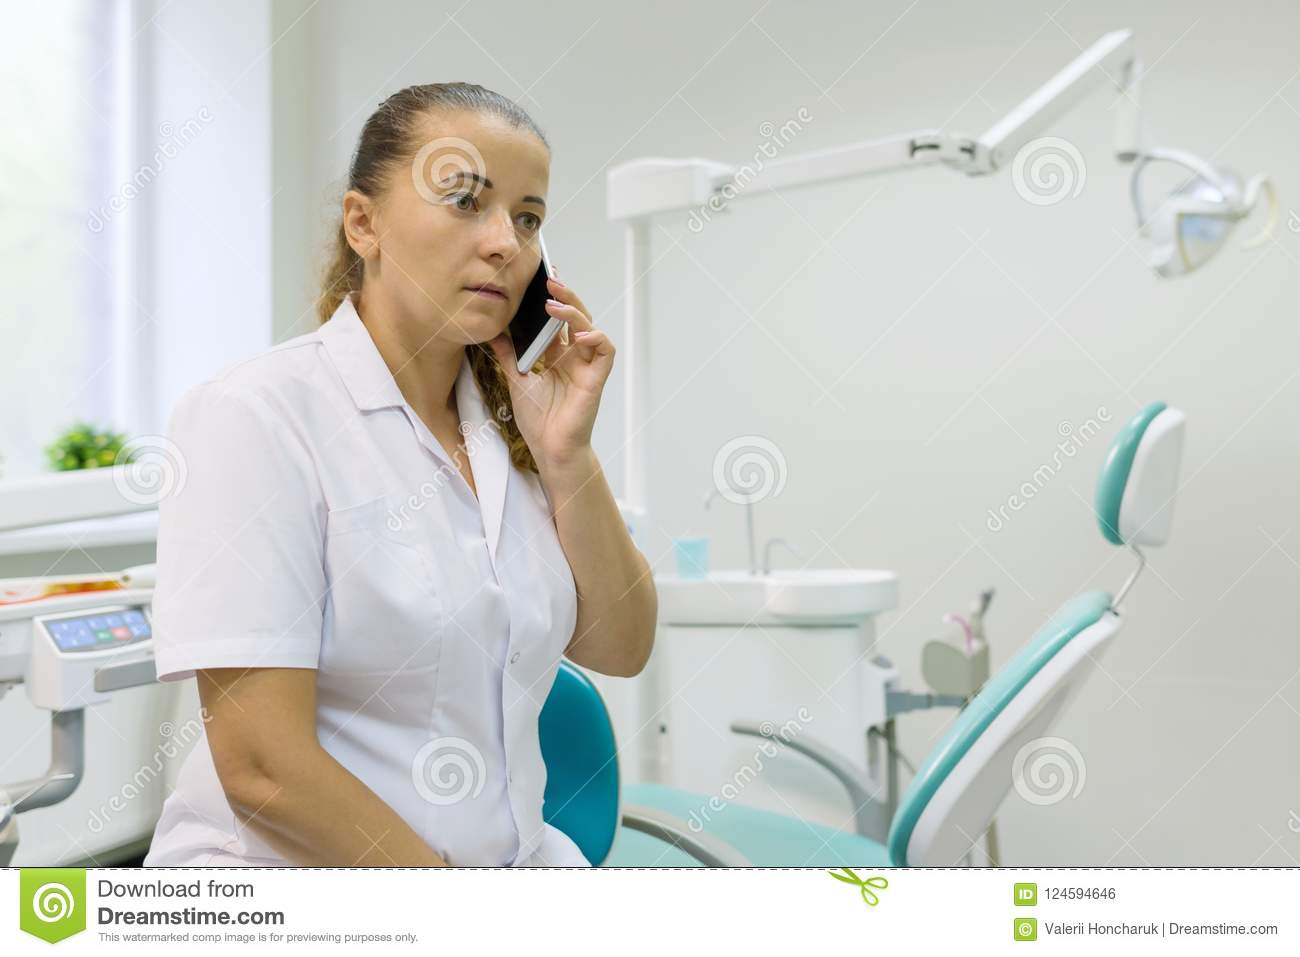 Portrait of a female dentist, doctor talking on mobile phone on dental chair background. Medicine, dentistry and healthcare concep